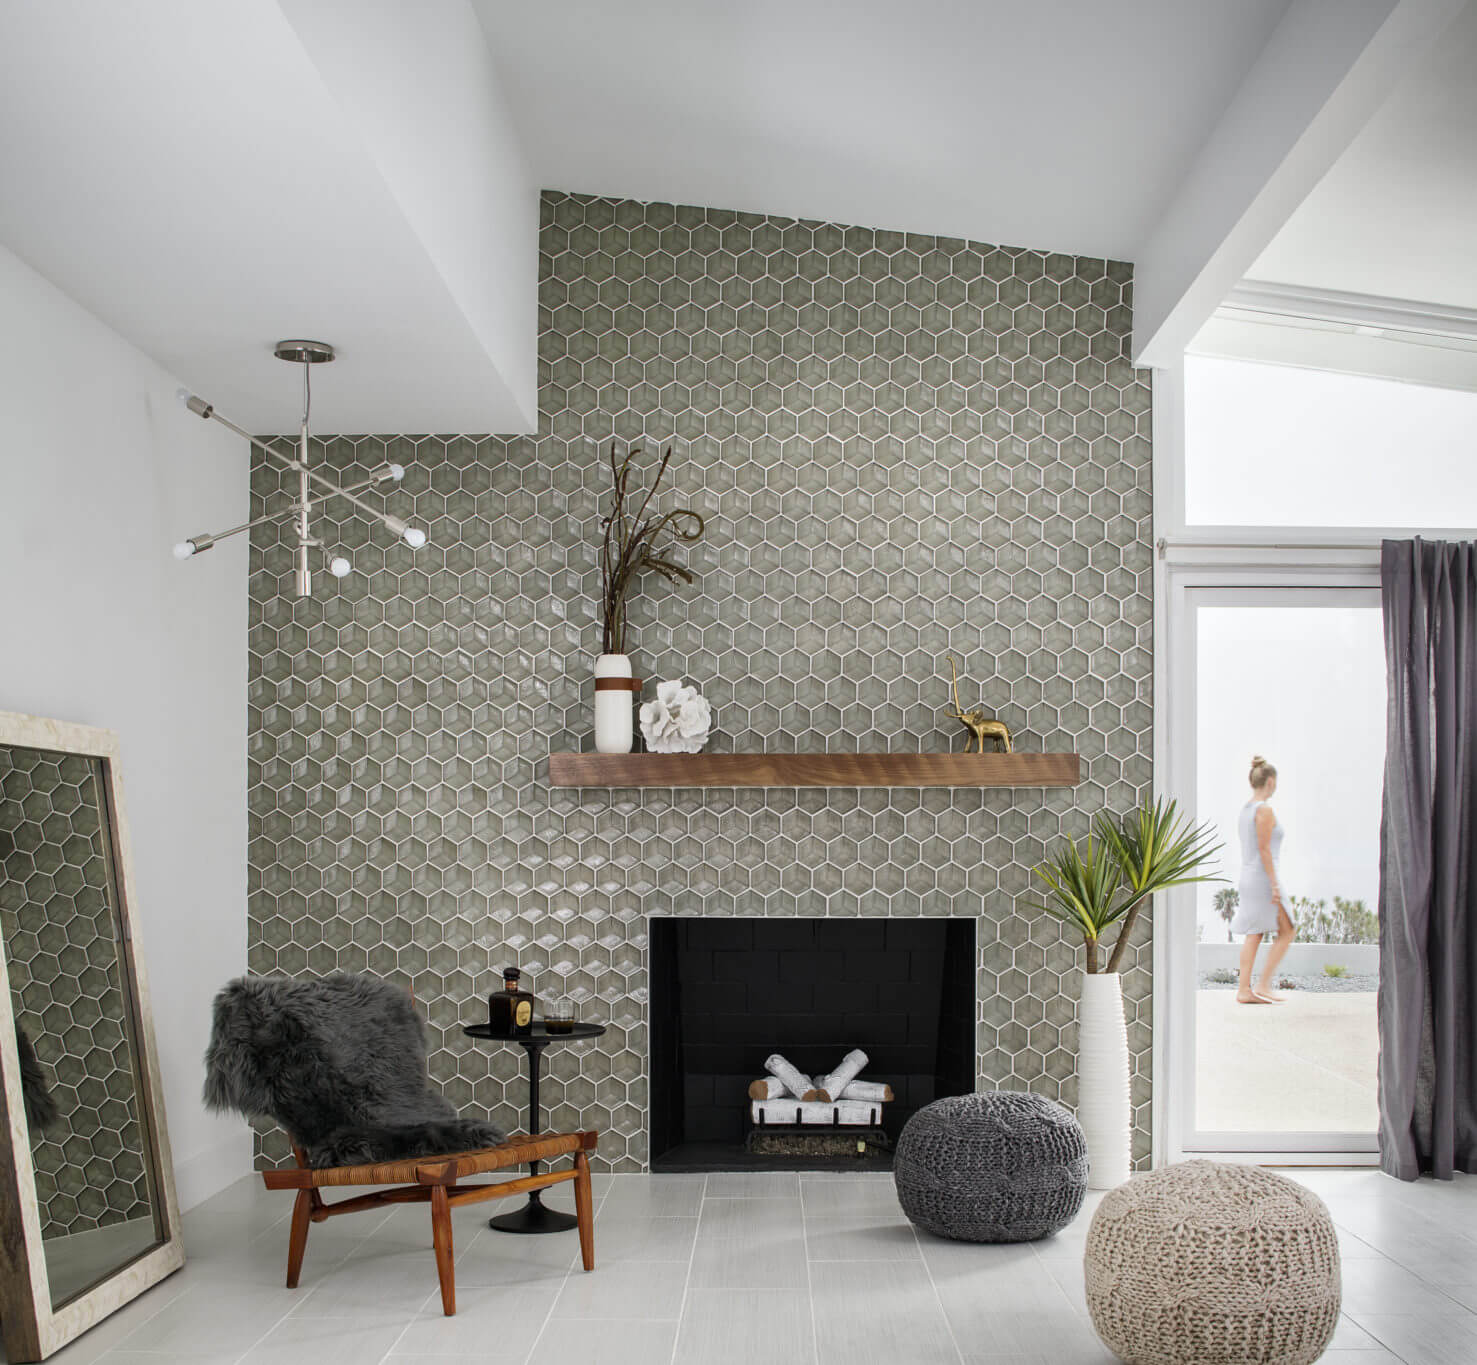 Hexagon tile wall and fireplace surround